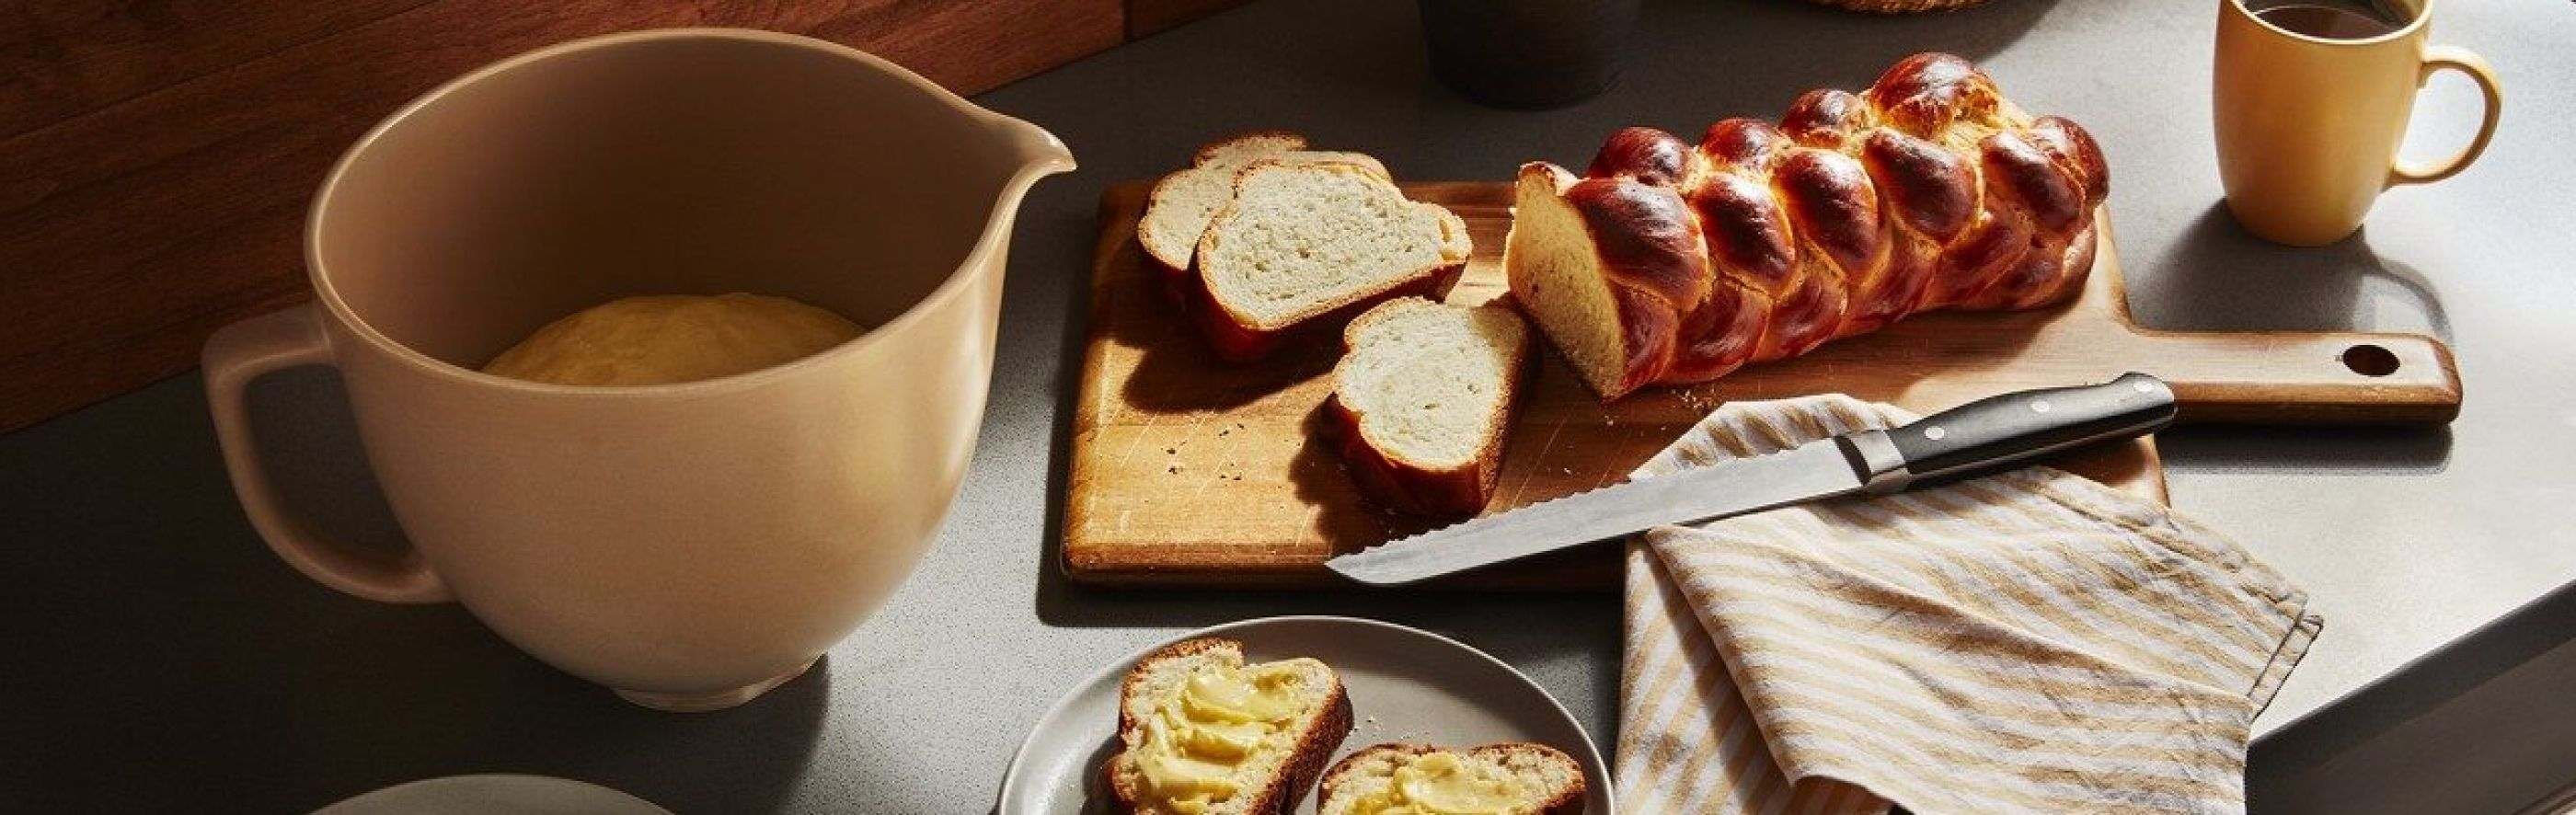 Baked braided bread on counter with stand mixer bowl